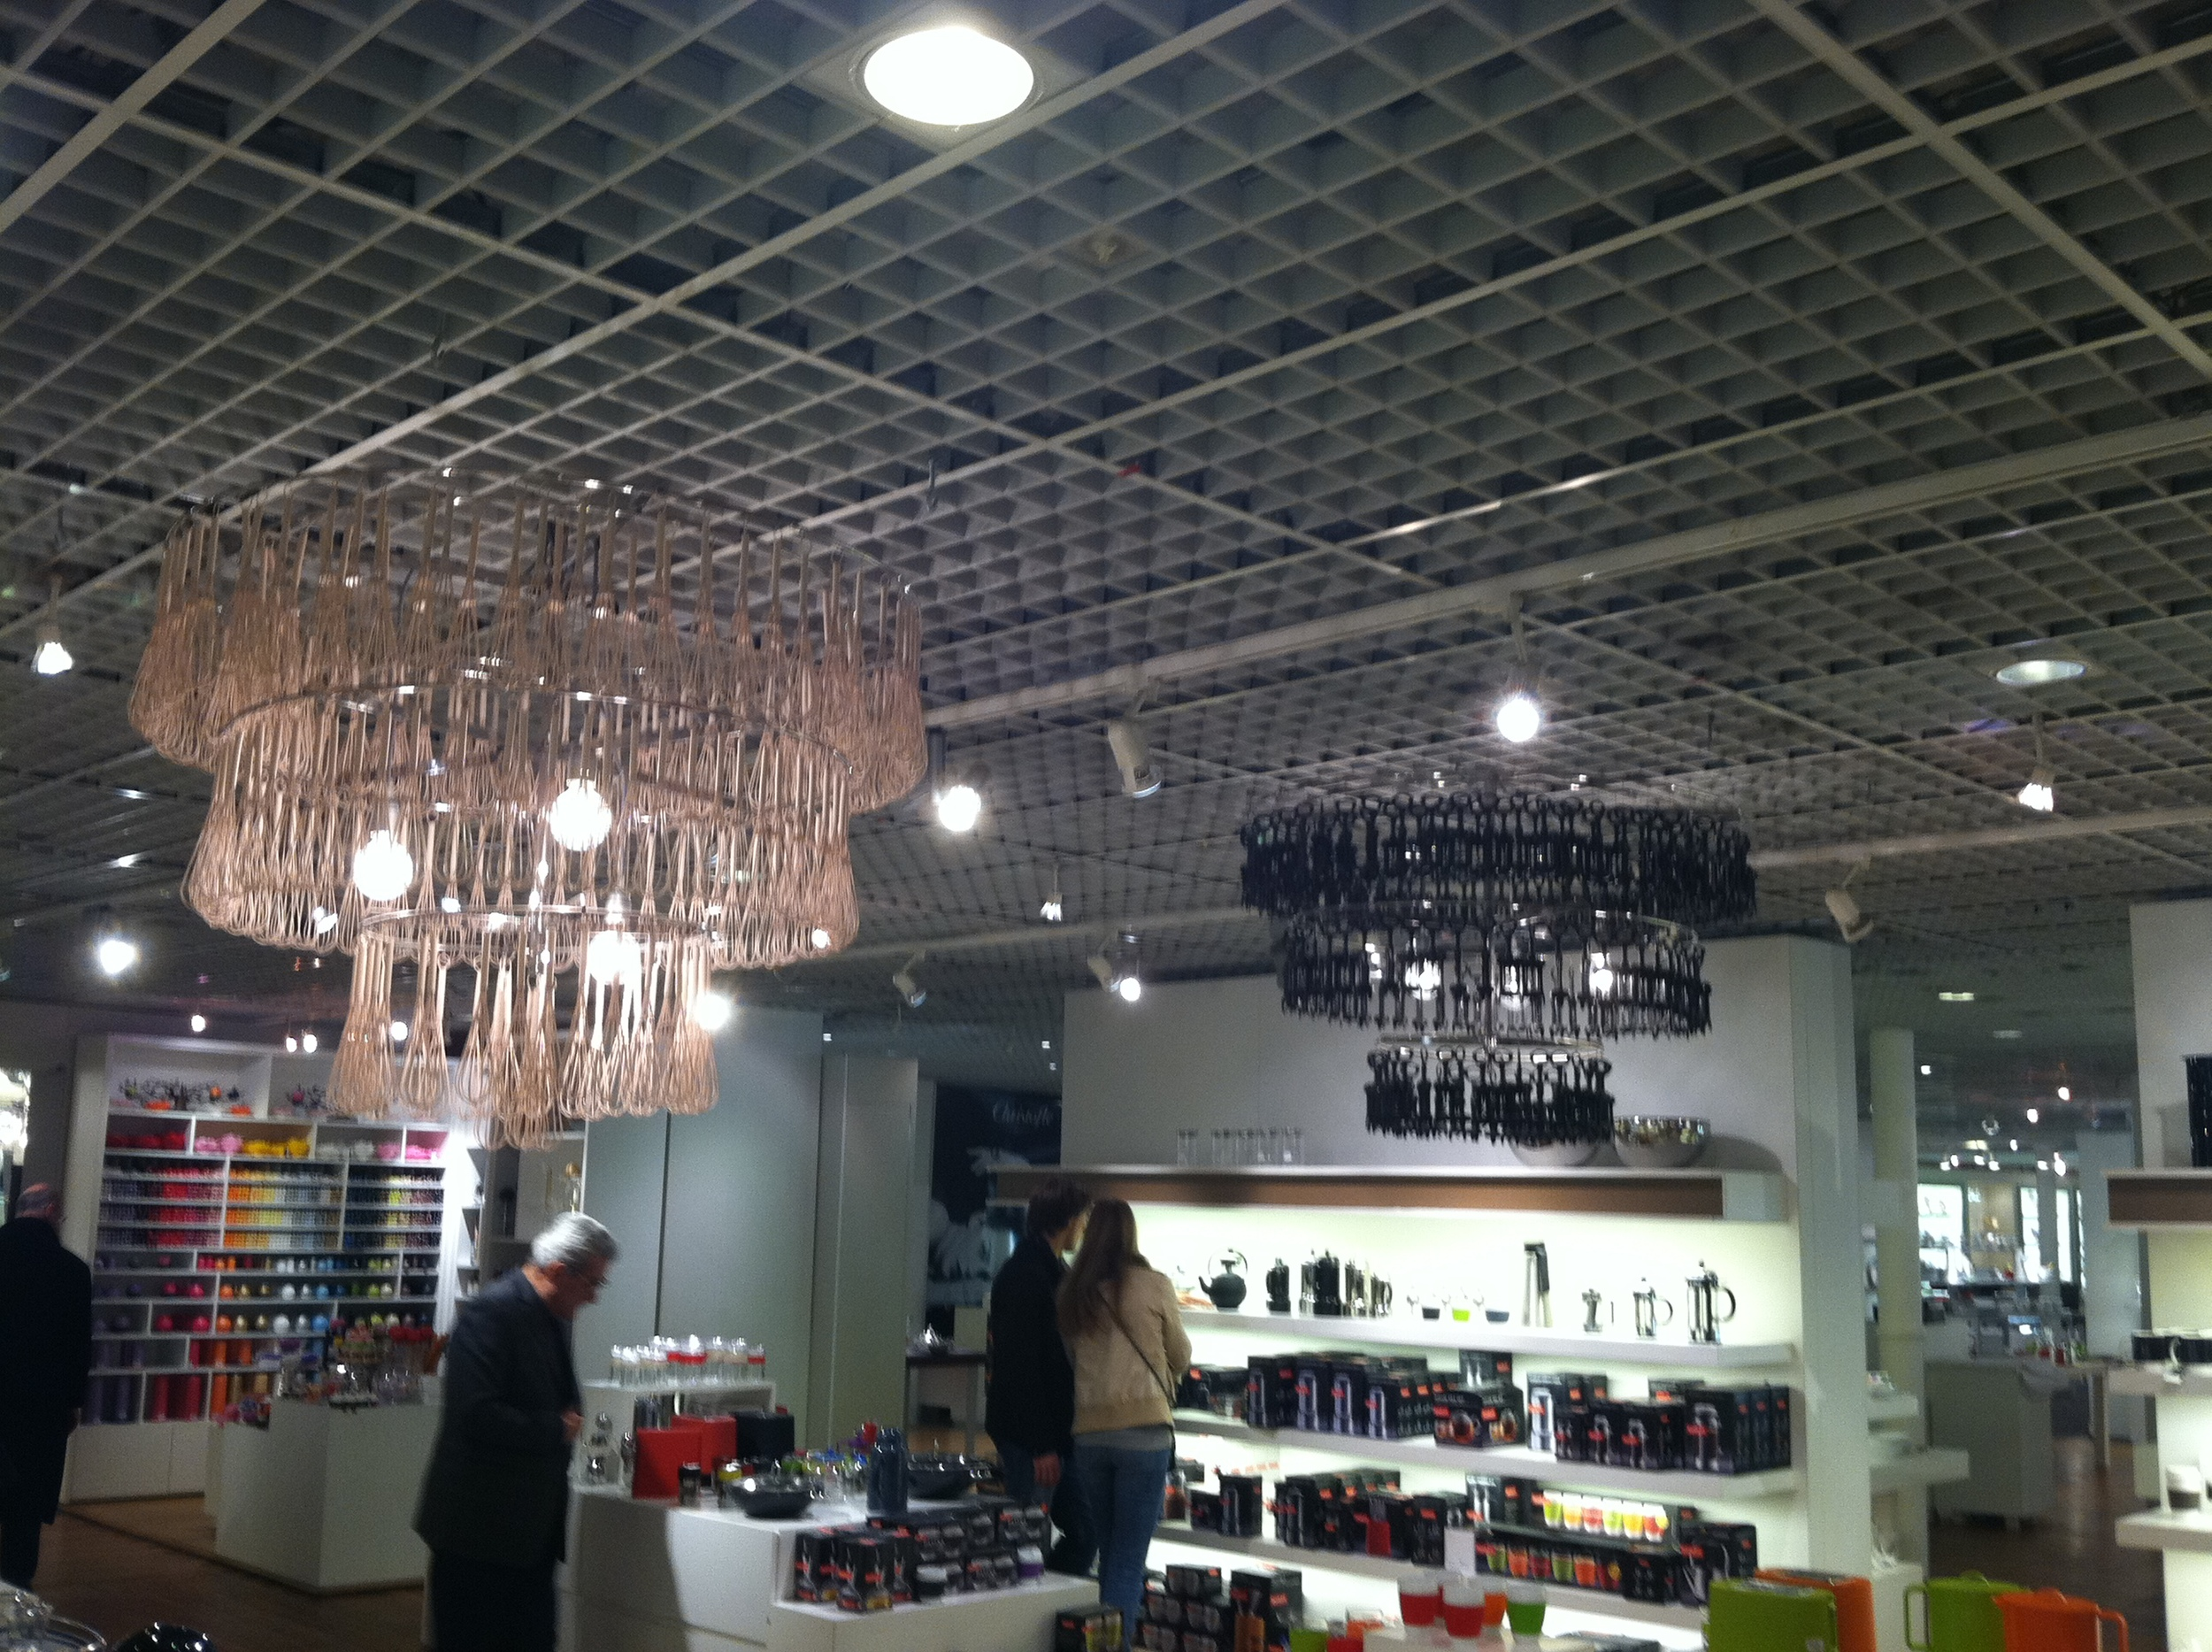 Large chandeliers made out of whisks inside Le Bon Marche